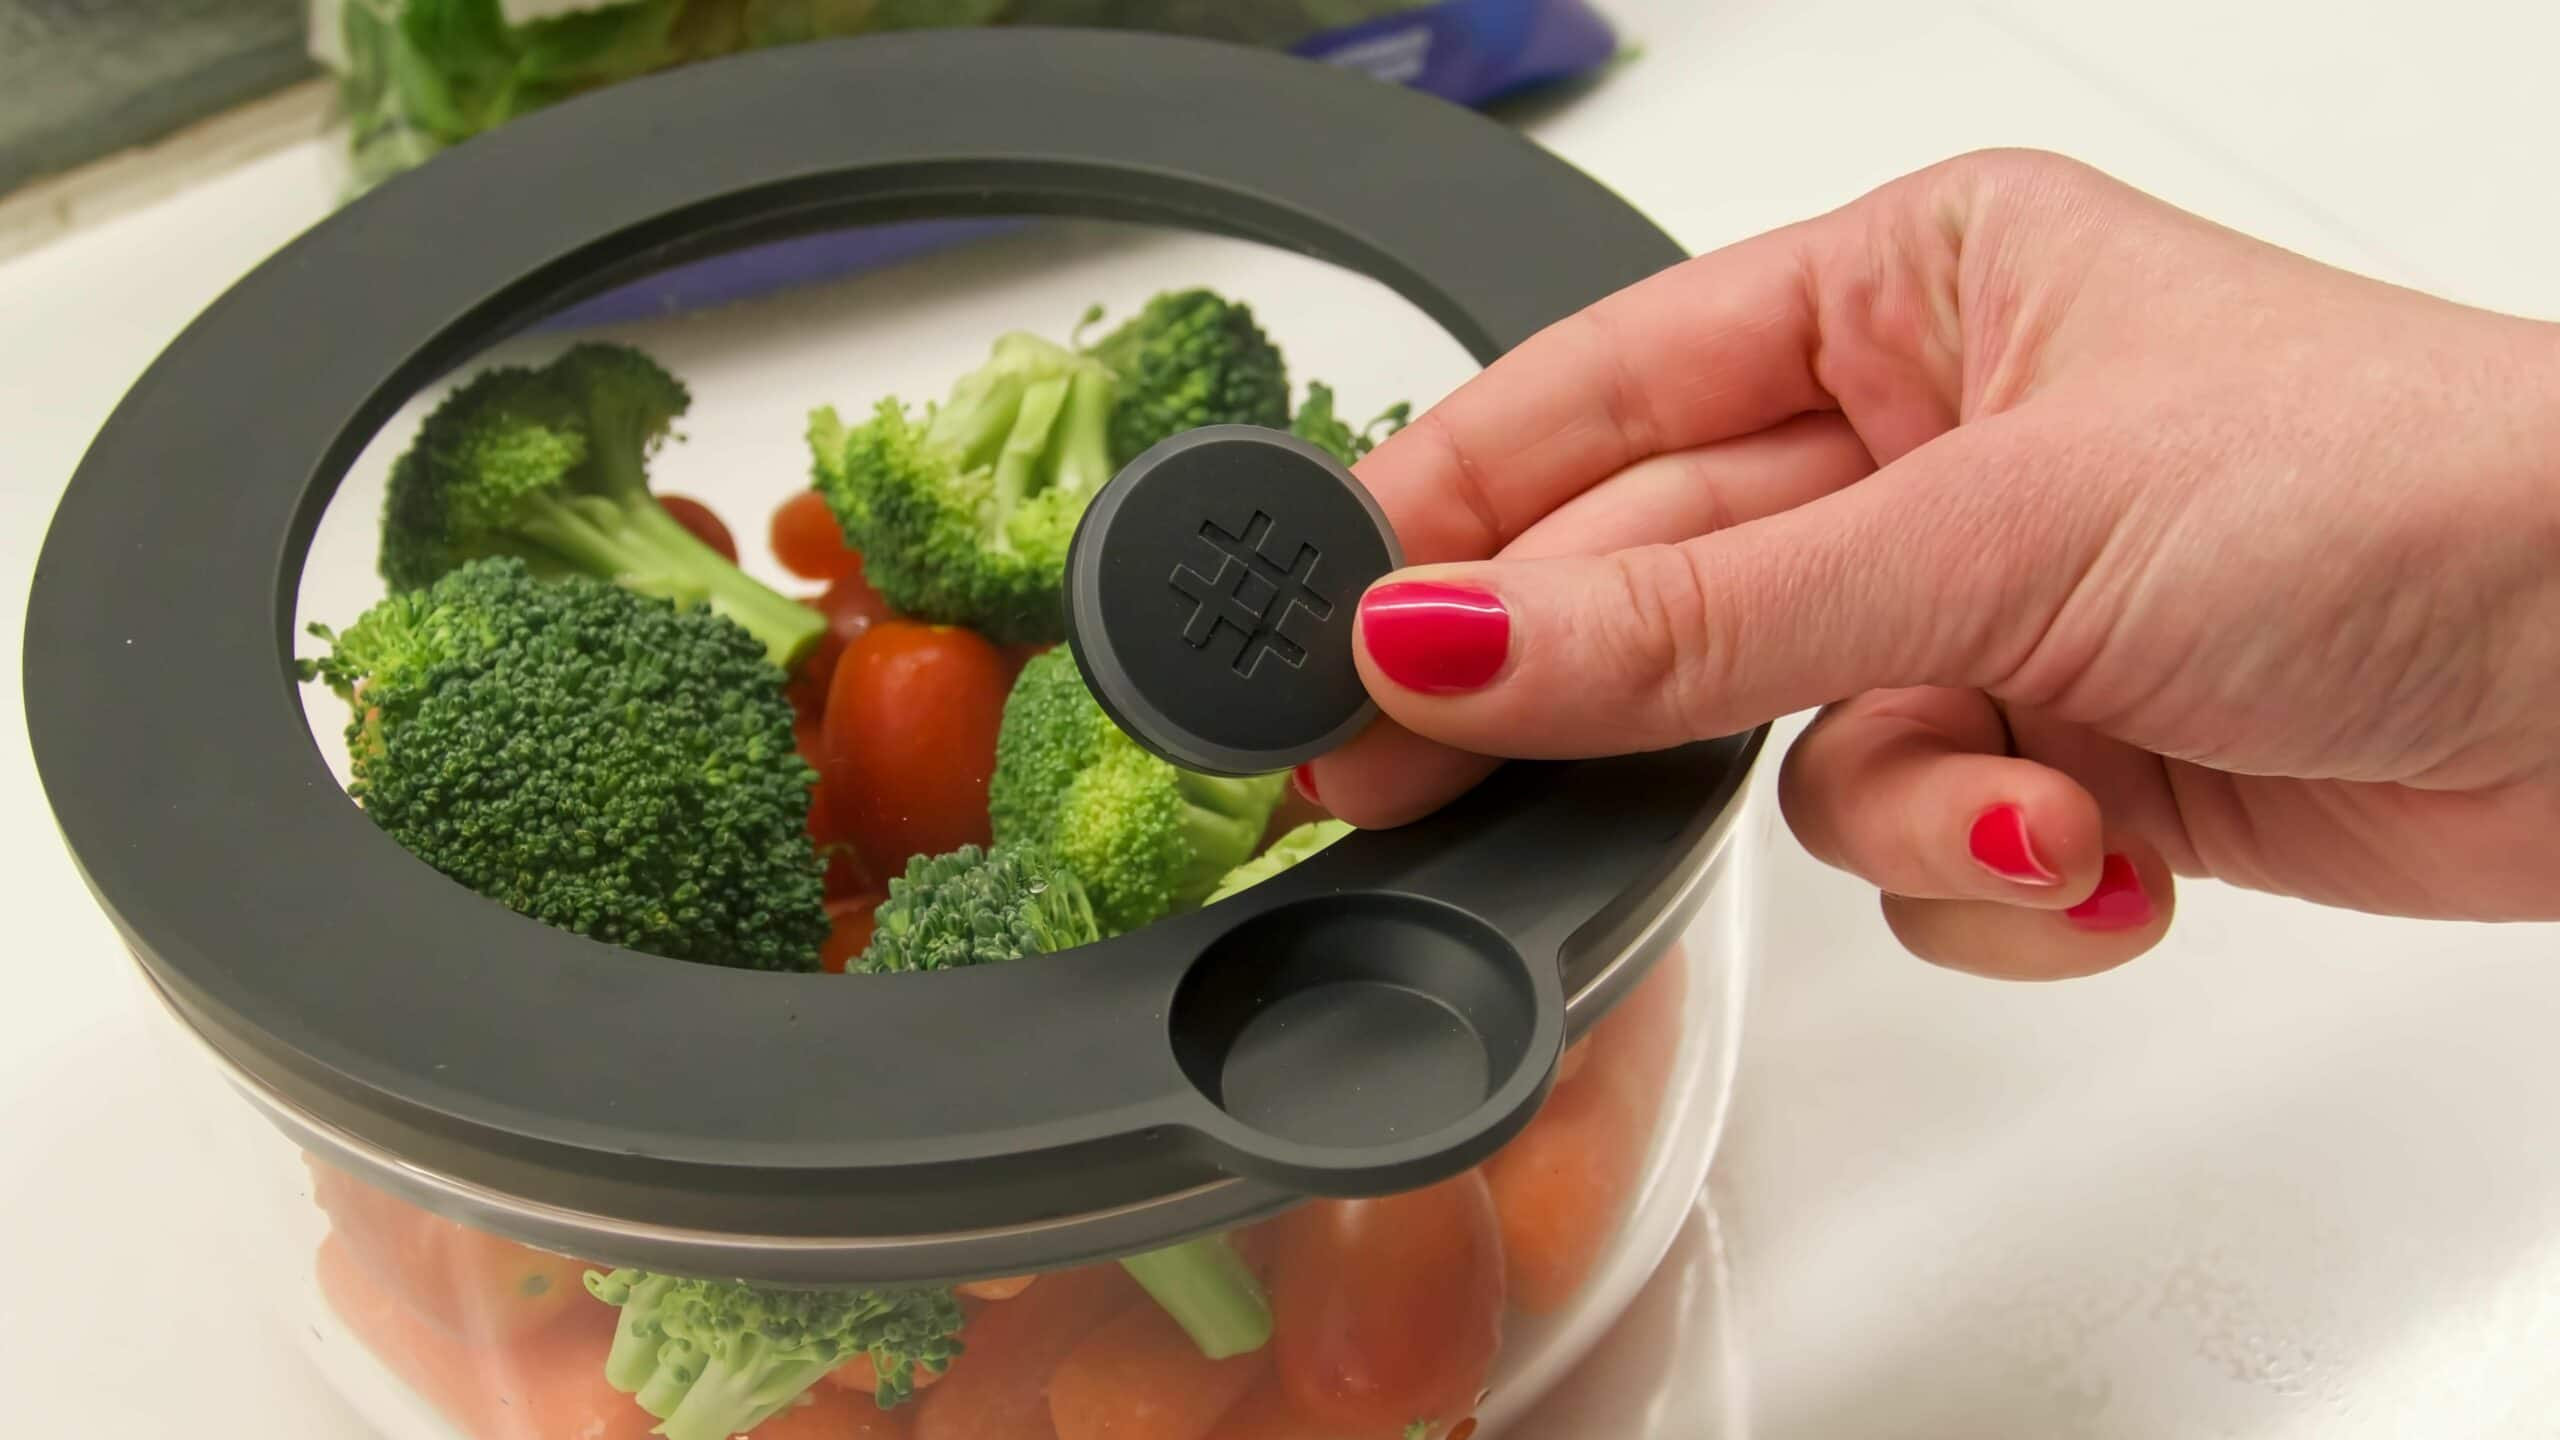 You are currently viewing Ovie Smarterware lets Alexa manage your leftovers